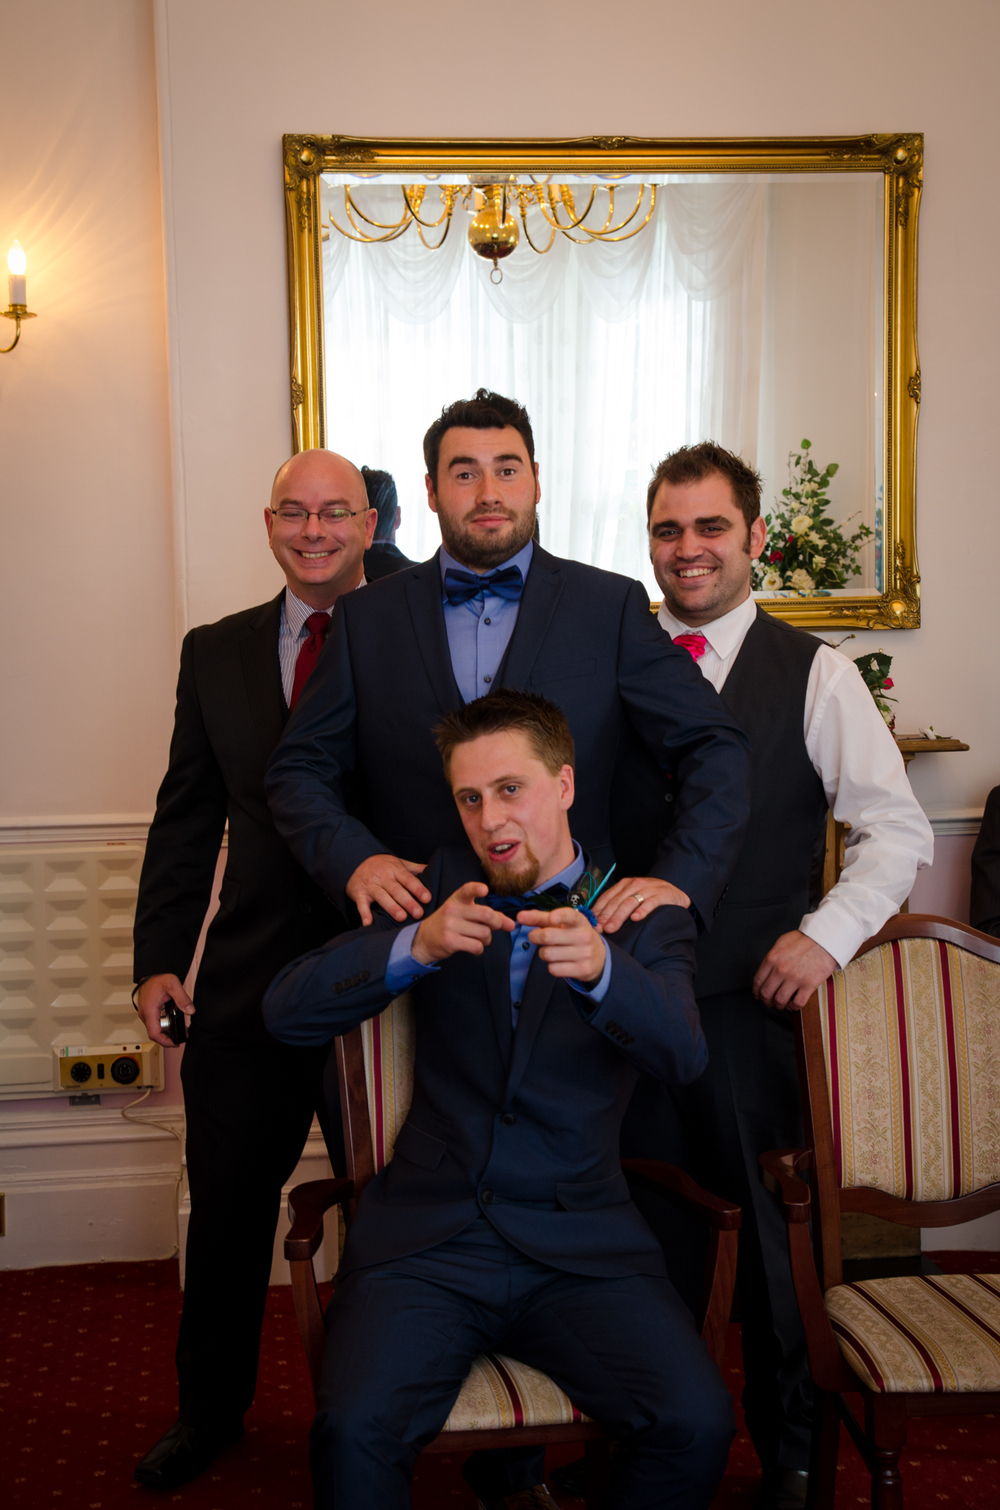 Tanya & Mike's Wedding Ceremony-3.jpg